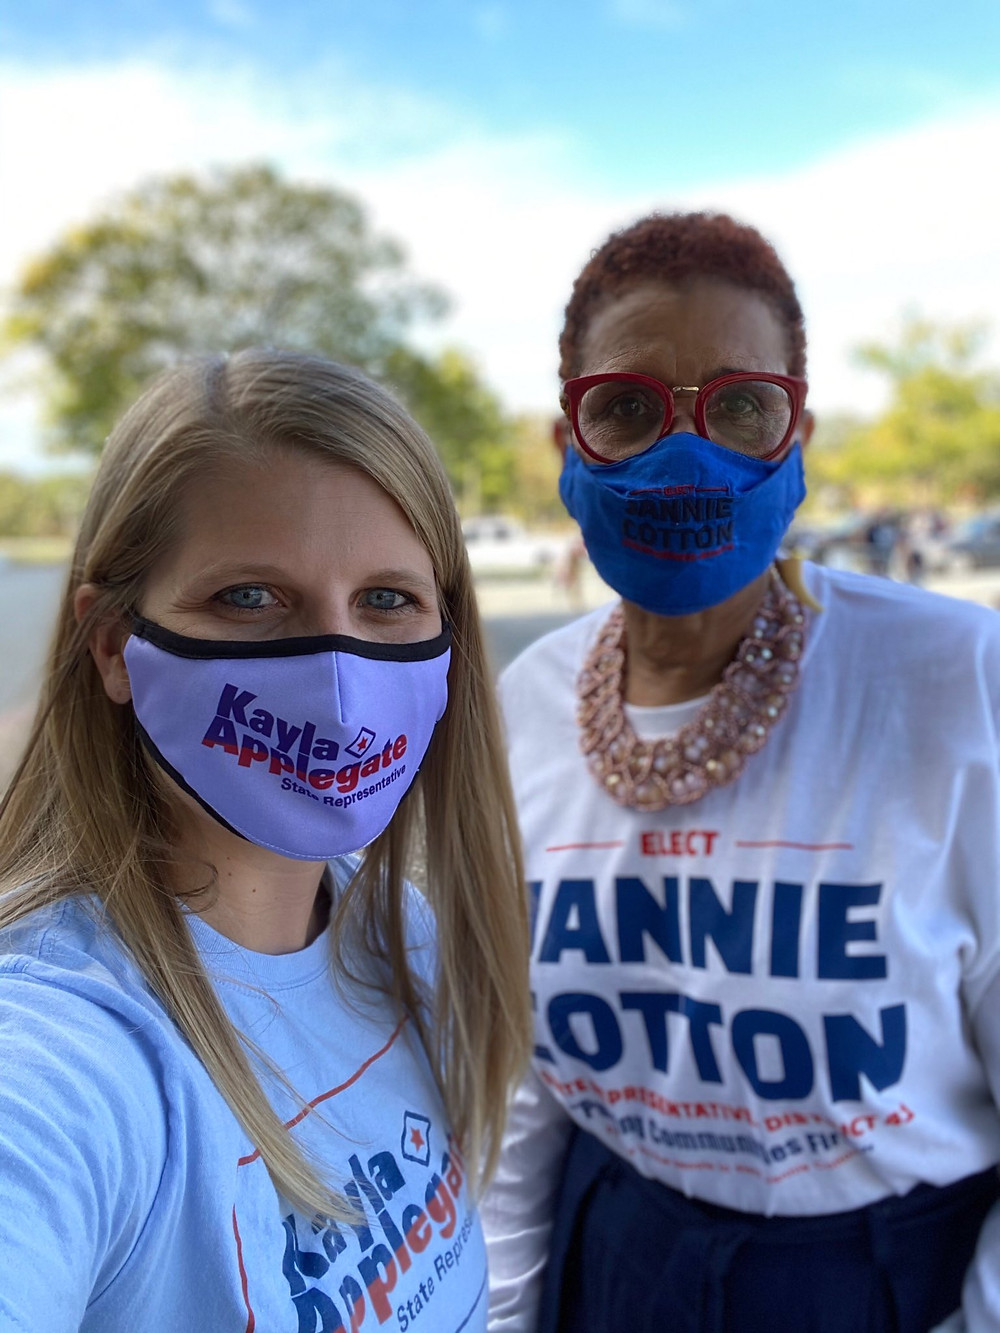 Candidate Jannie Cotton & Candidate Kayla Applegate at the Joyce Elliot Campaign Rally